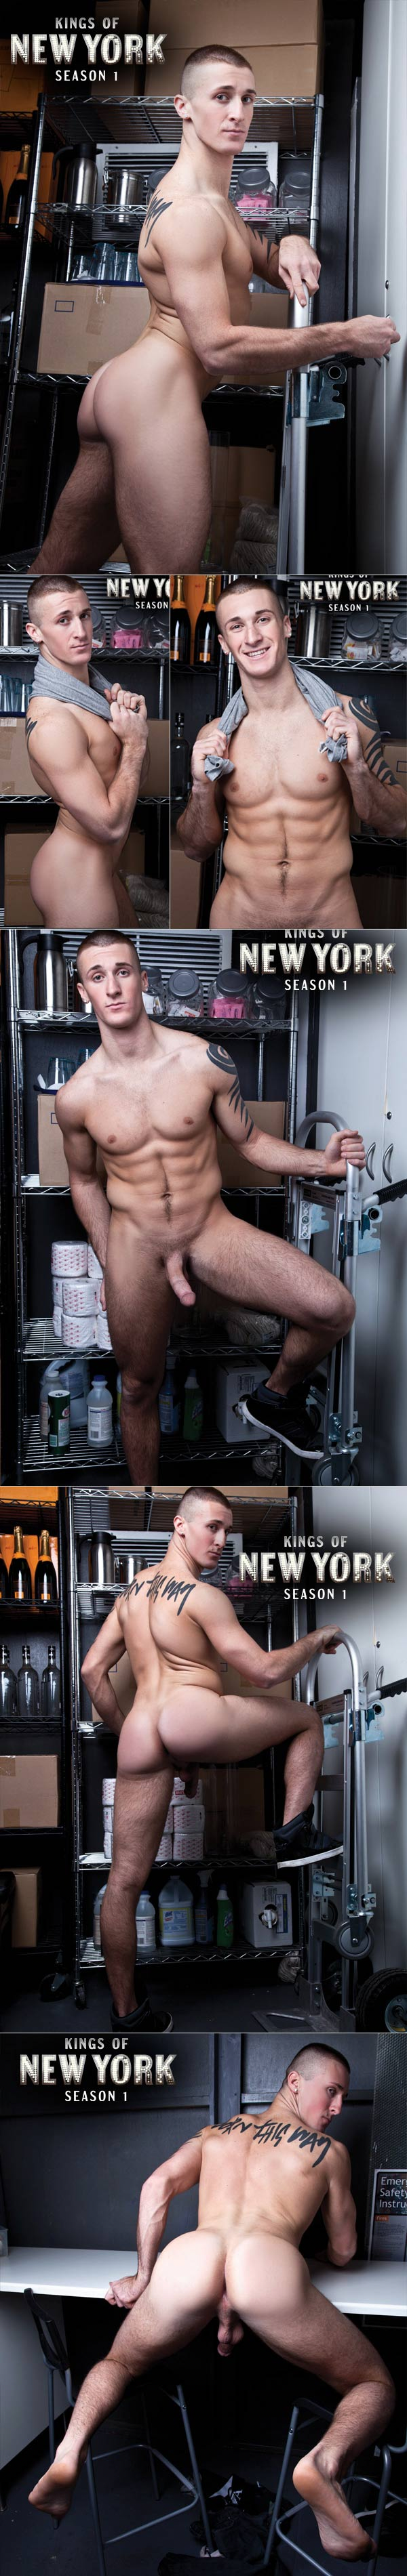 Kings Of New York (Trenton Ducati & Brice Banyan) at LucasEntertainment.com